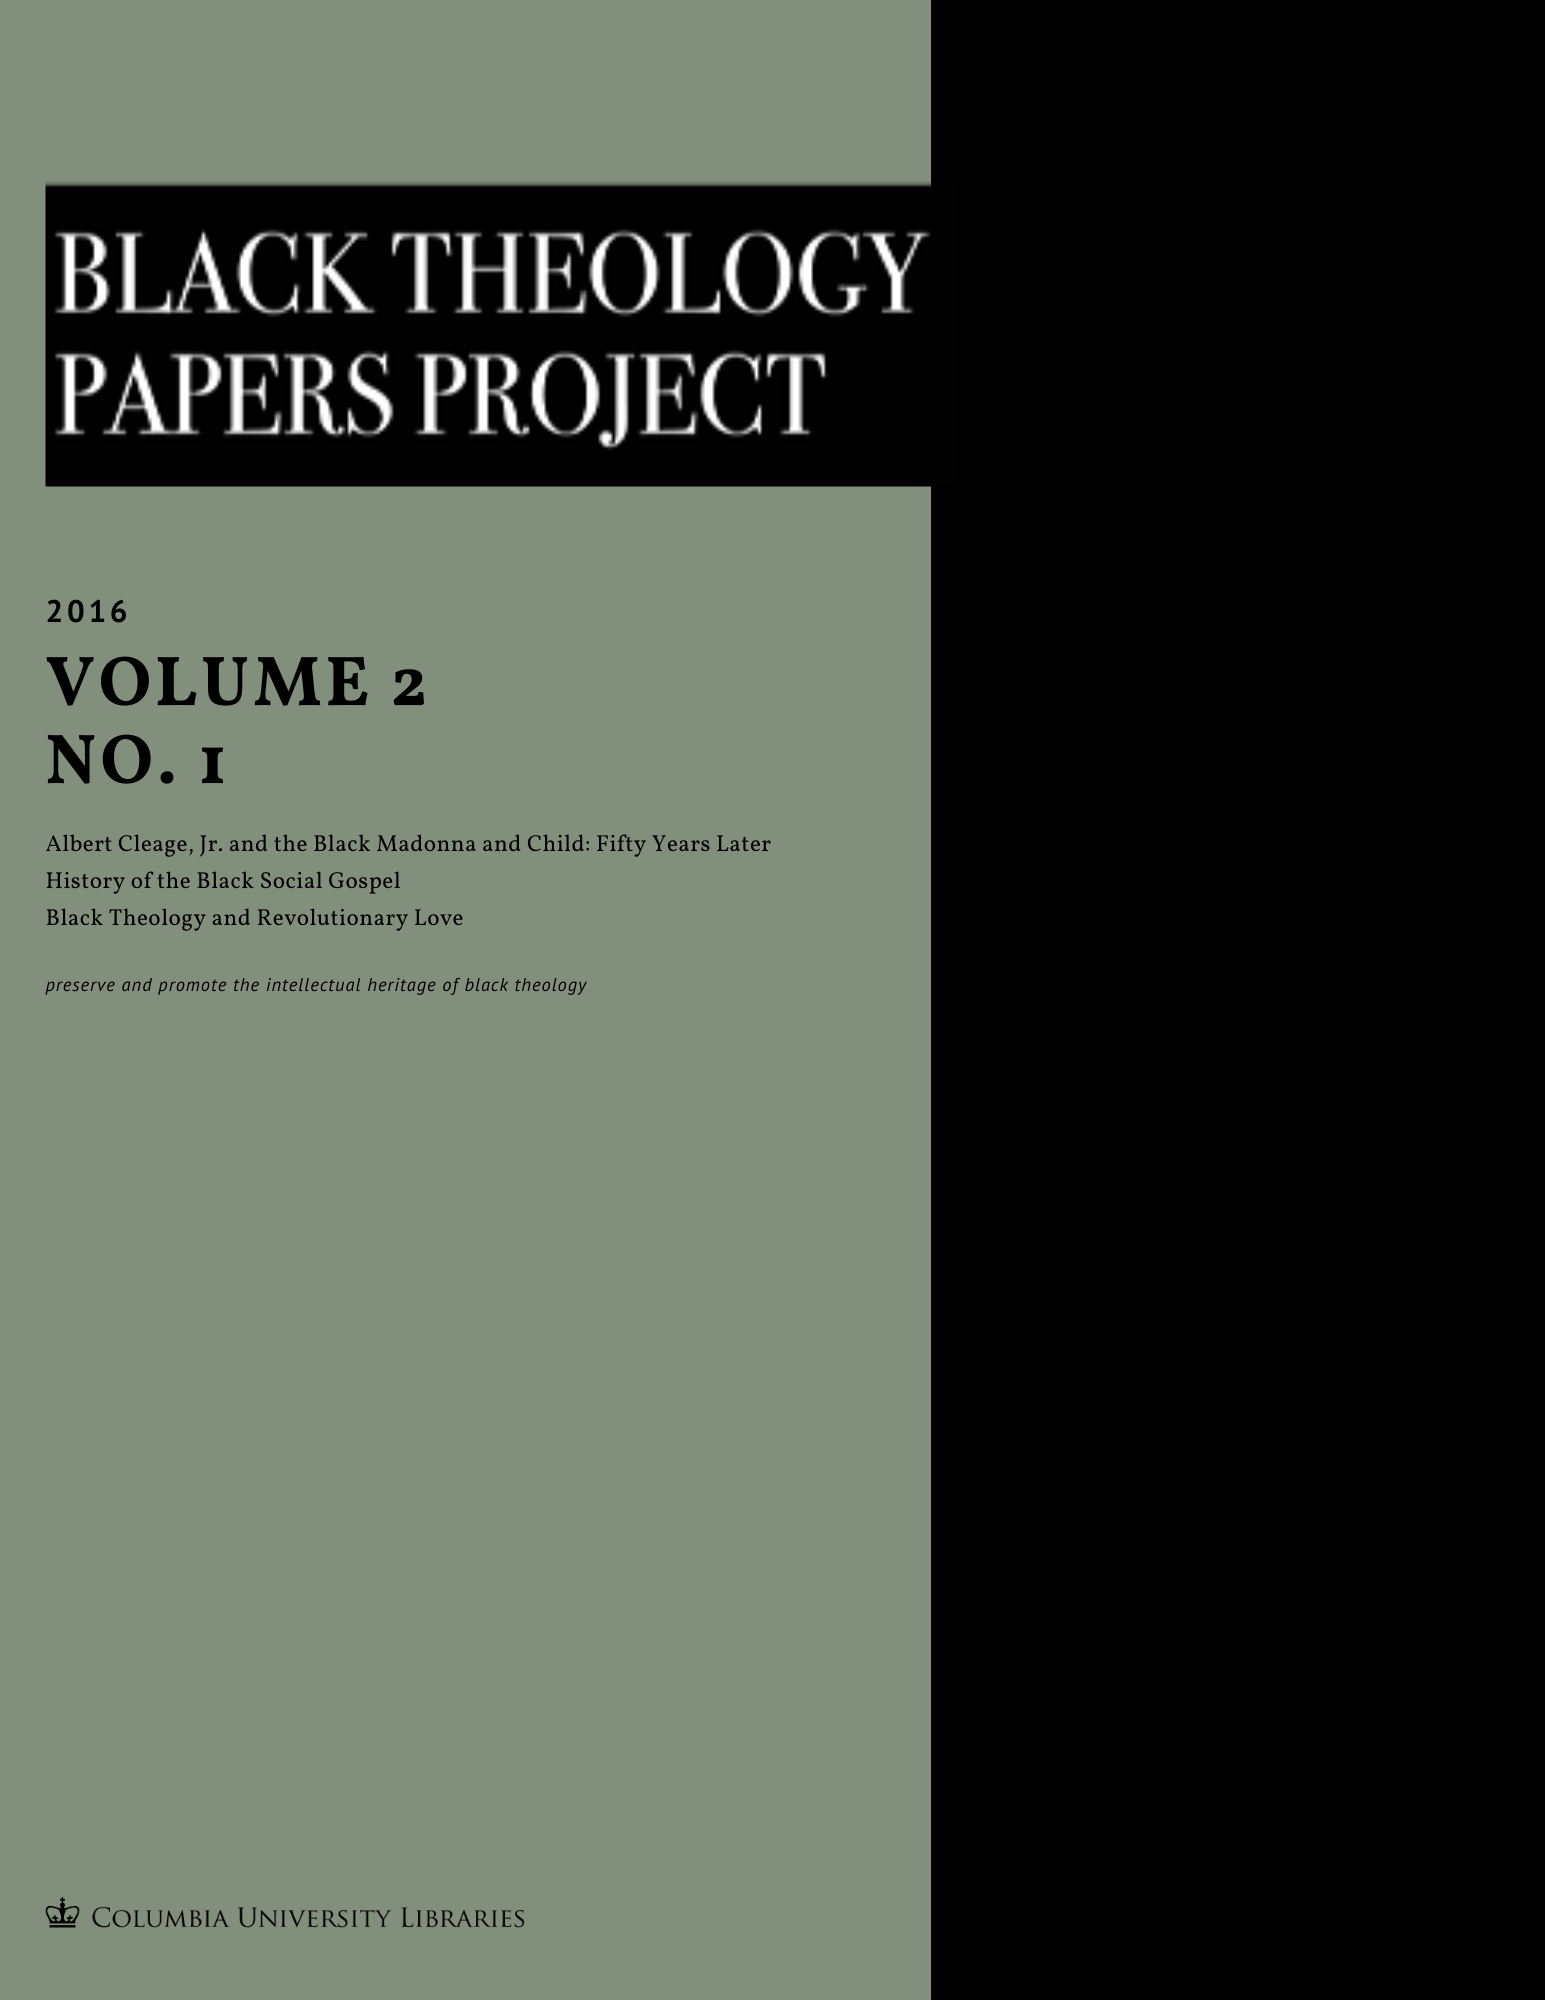 Black Theology Papers Vol. 2